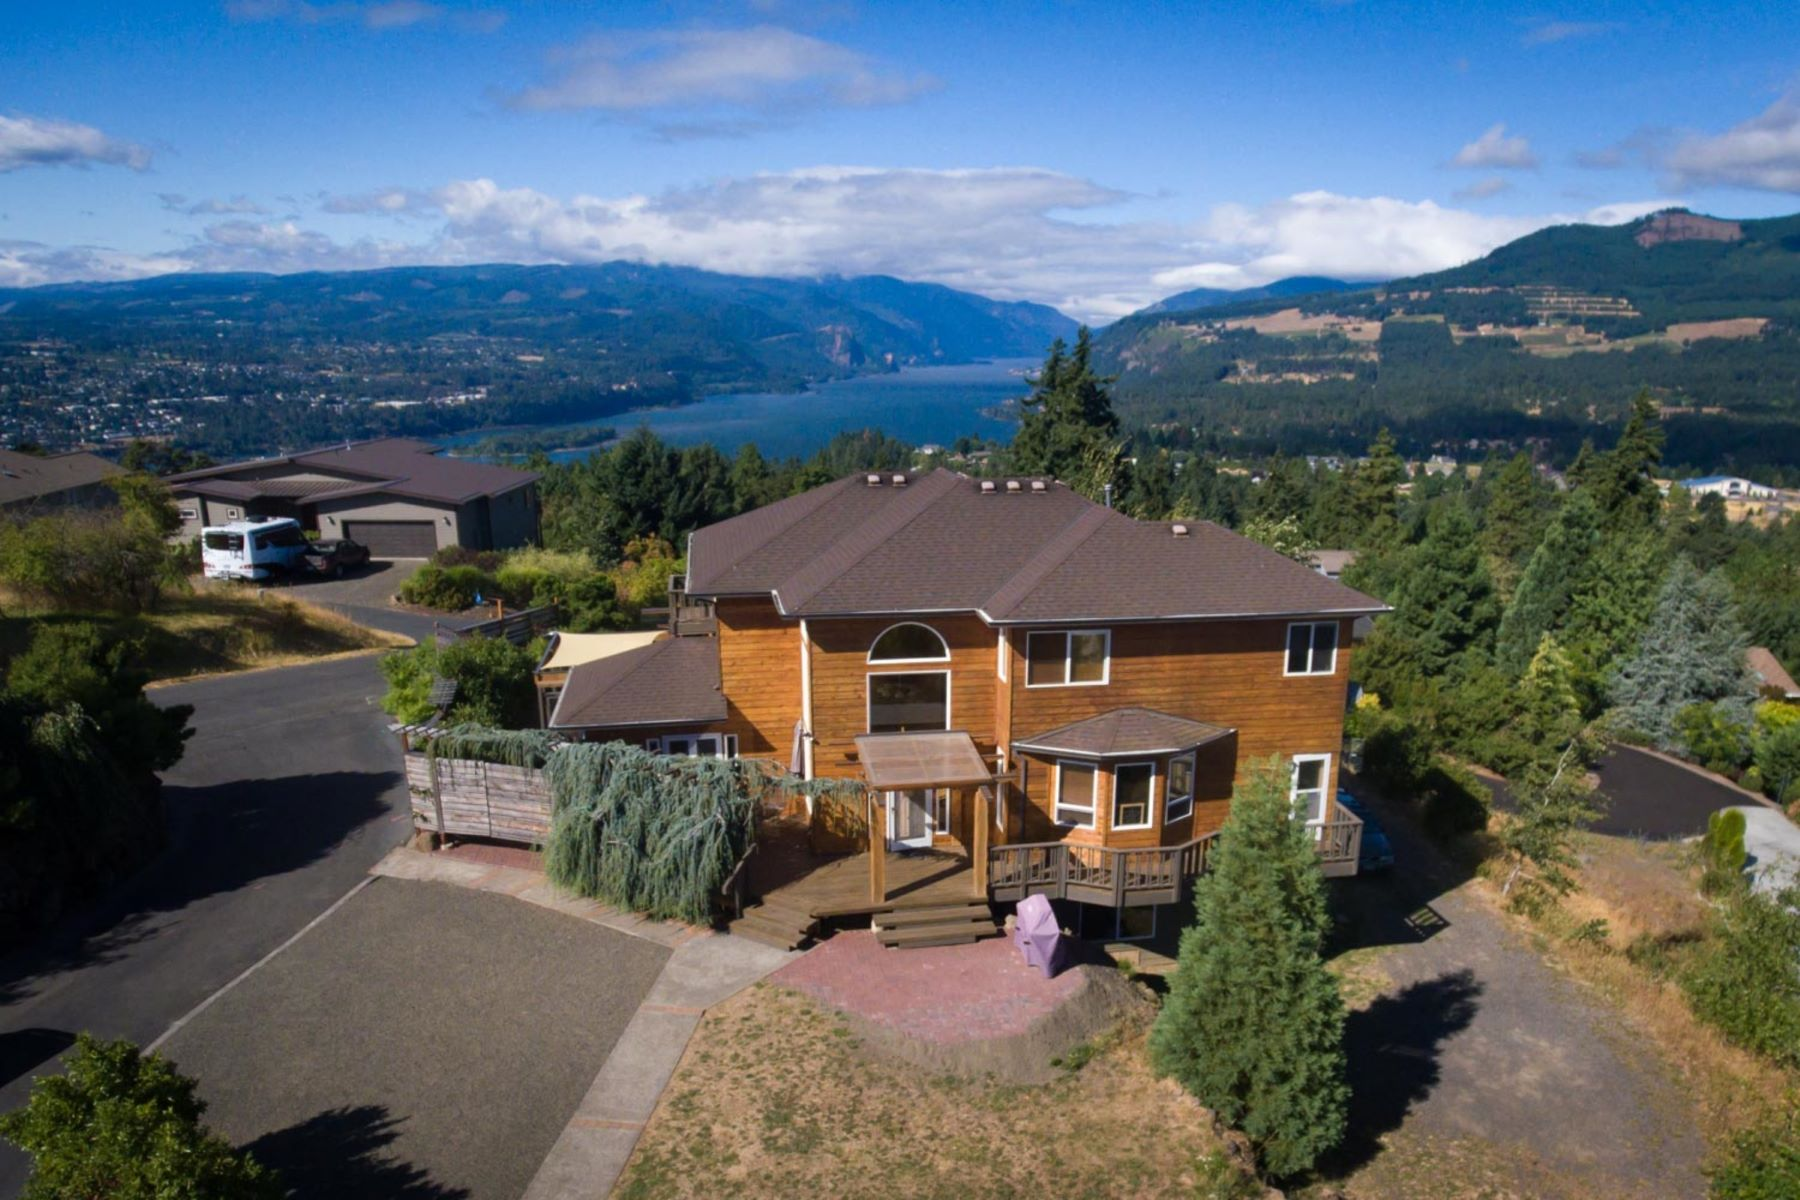 Other Residential Homes for Sale at 450 EL CAMINO REAL White Salmon, WA 98672 450 EL CAMINO REAL White Salmon, Washington 98672 United States